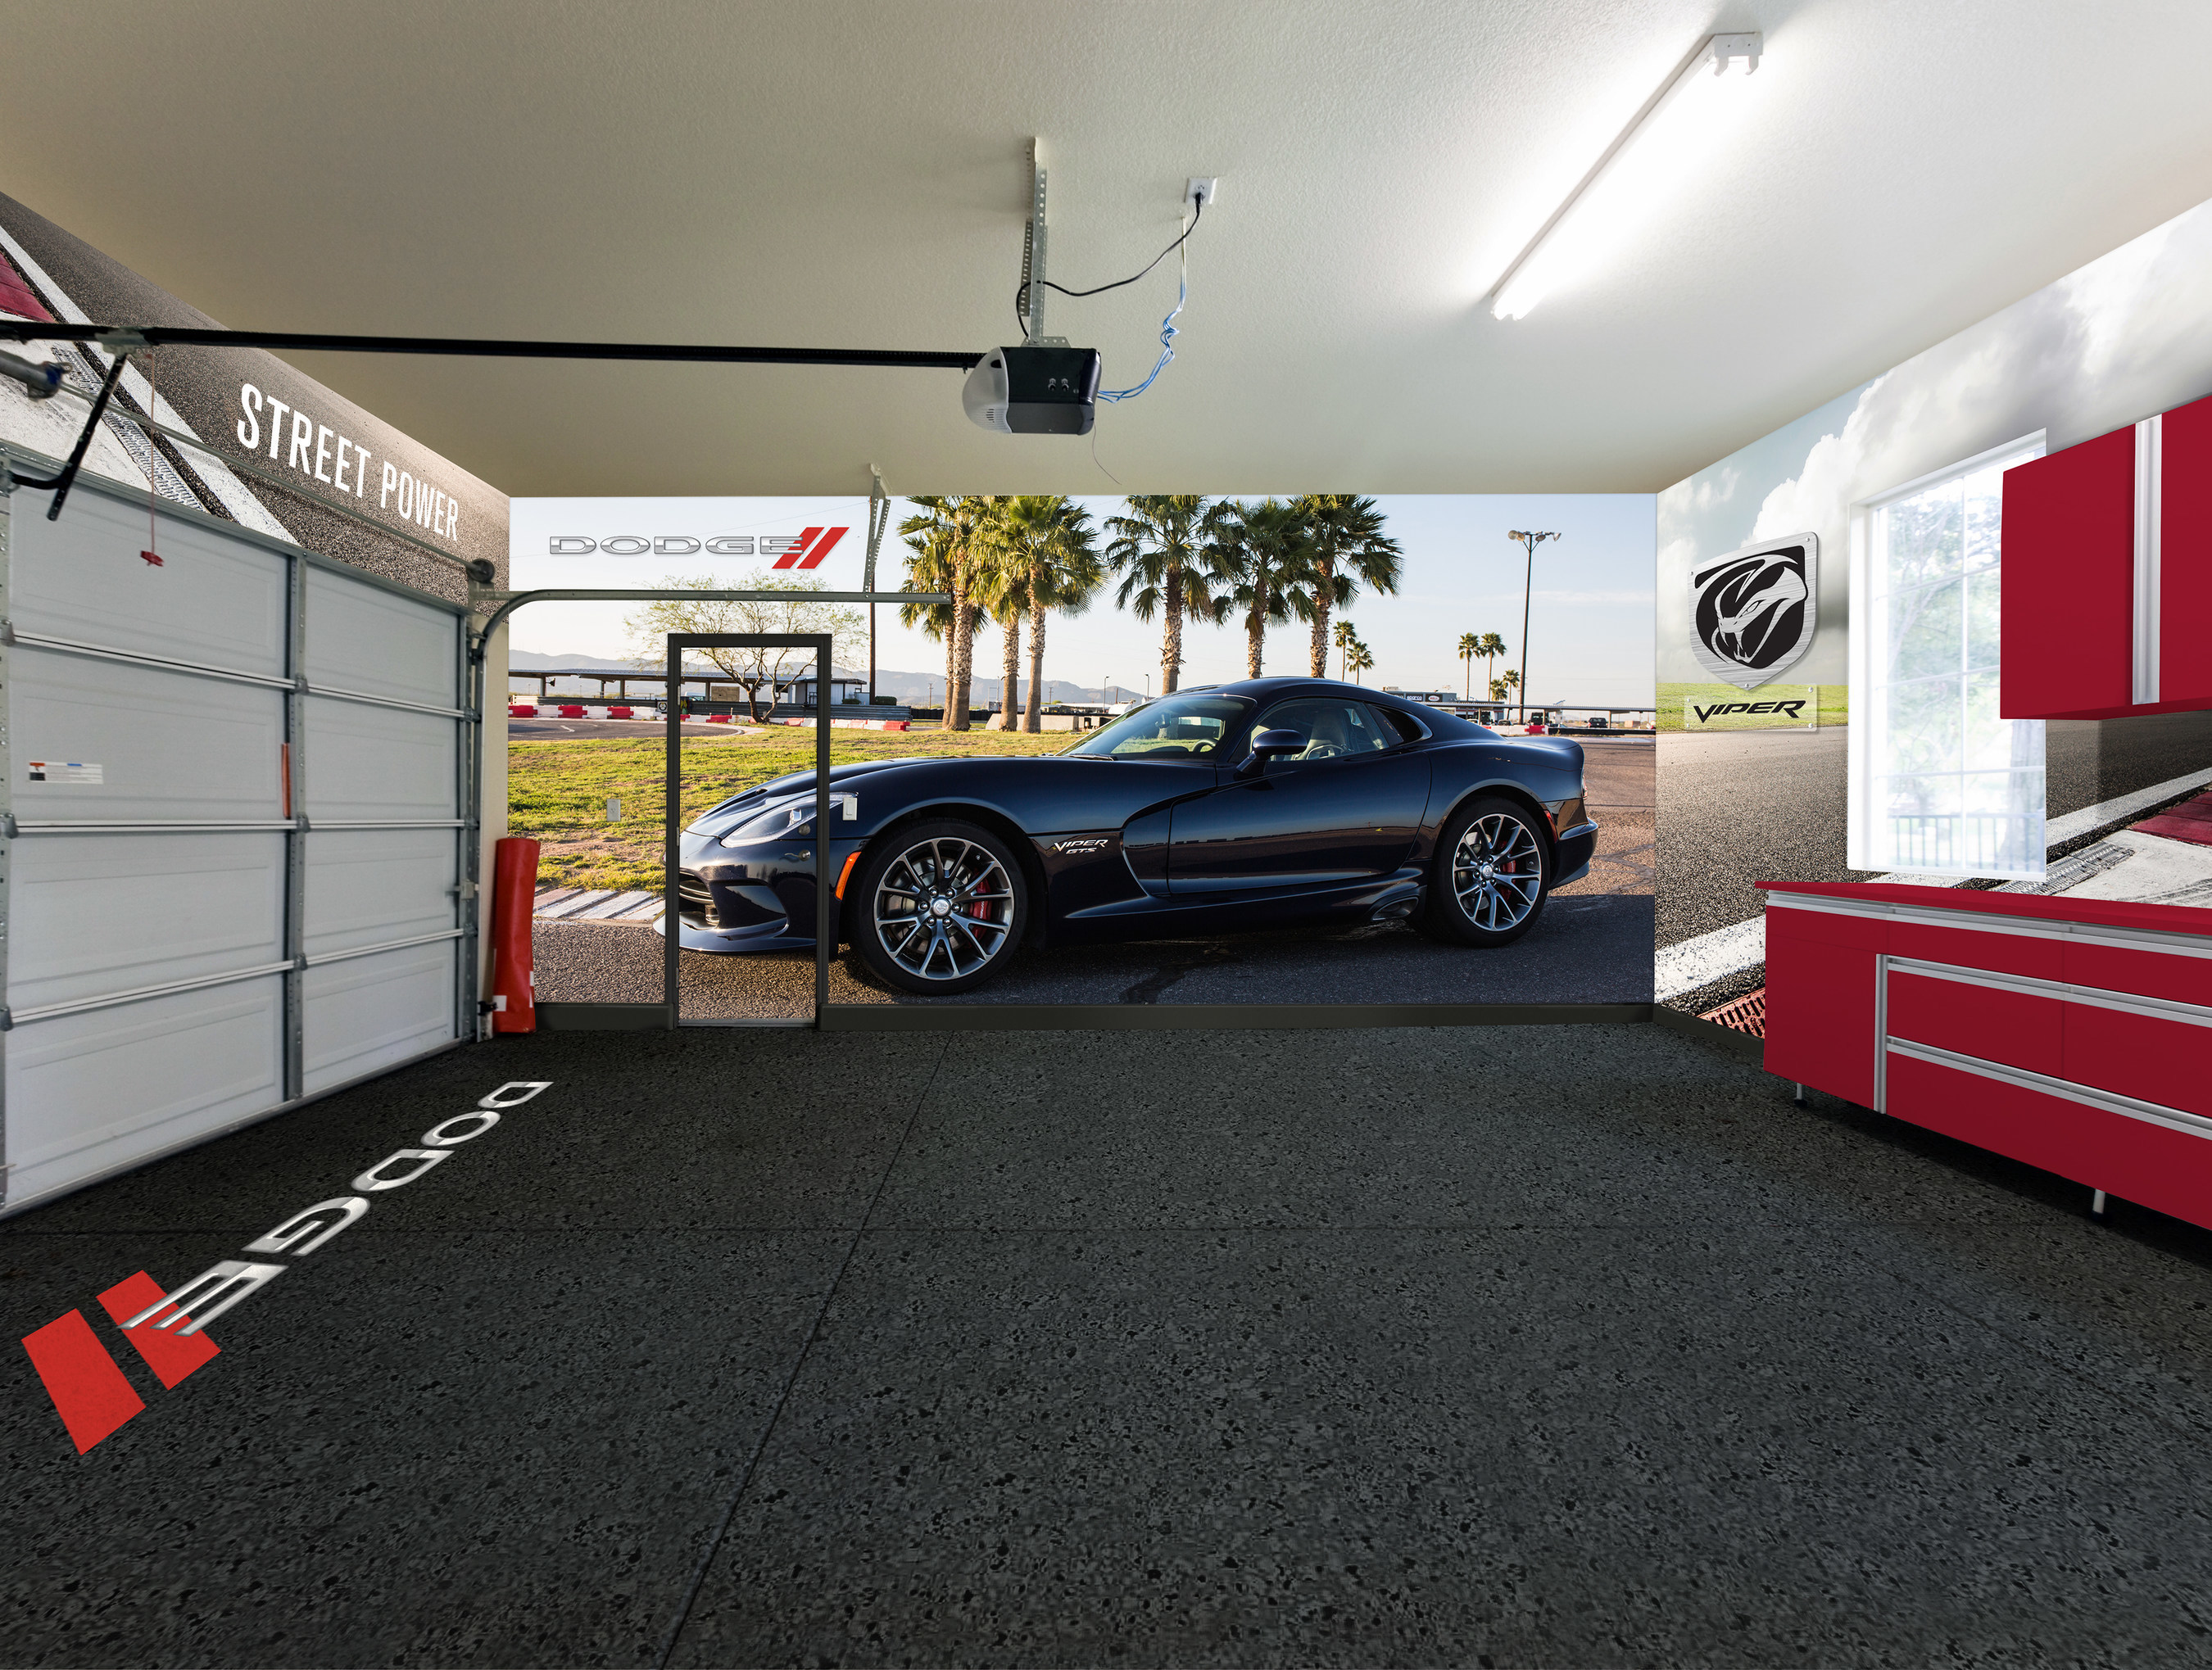 Through an expanded partnership with the Detroit-based wall graphics company Fathead, Dodge just made creating the ultimate Dodge garage or special recreation space easier with a new line of floor-to-ceiling total coverage wall designs. Three full wall designs feature the Dodge Challenger SRT Hellcat, Challenger and Charger Scat Packs and Dodge Viper.